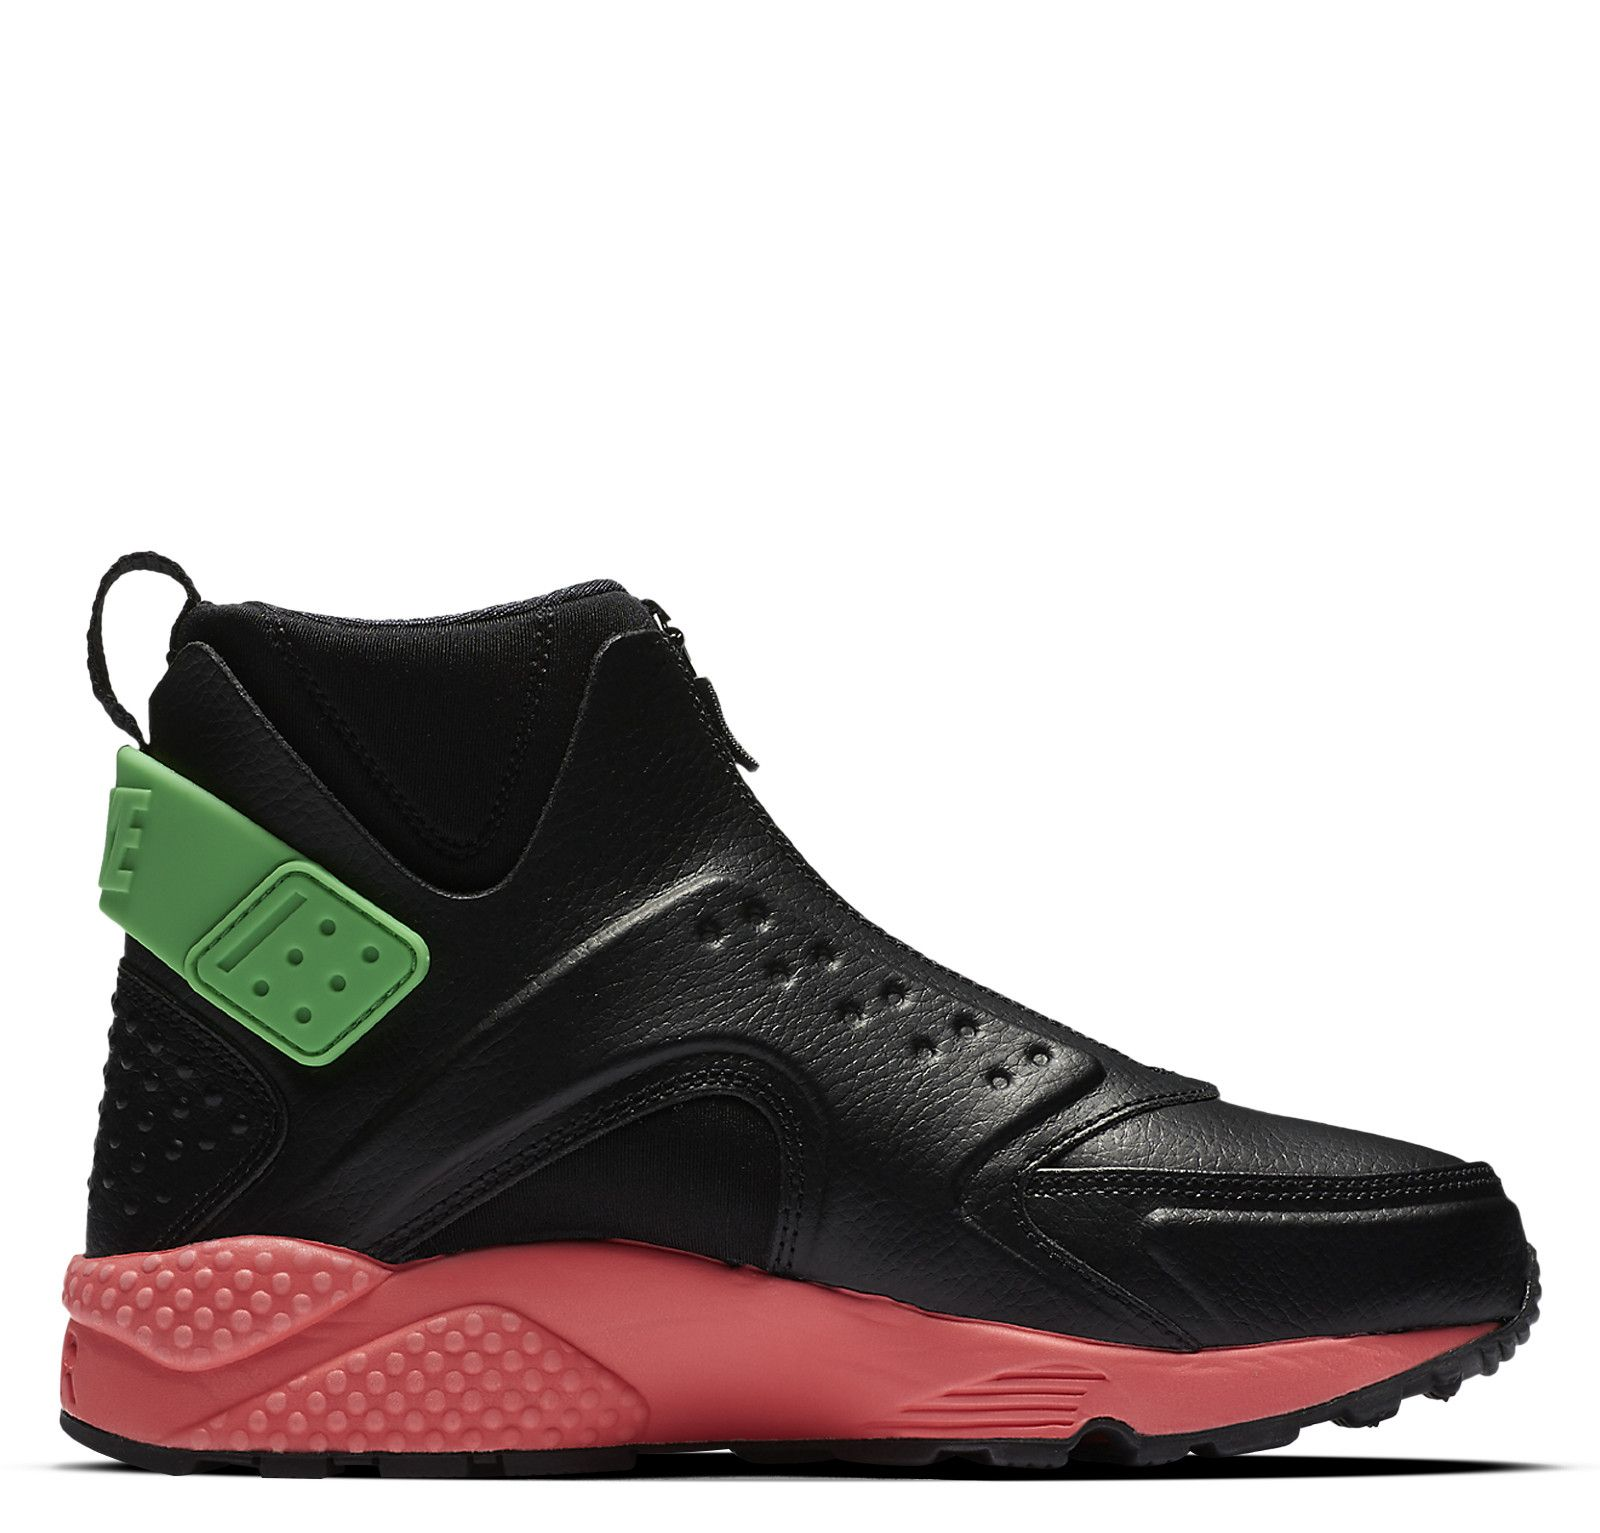 Nike Womens Air Huarache Mid shoes for her Pinterest